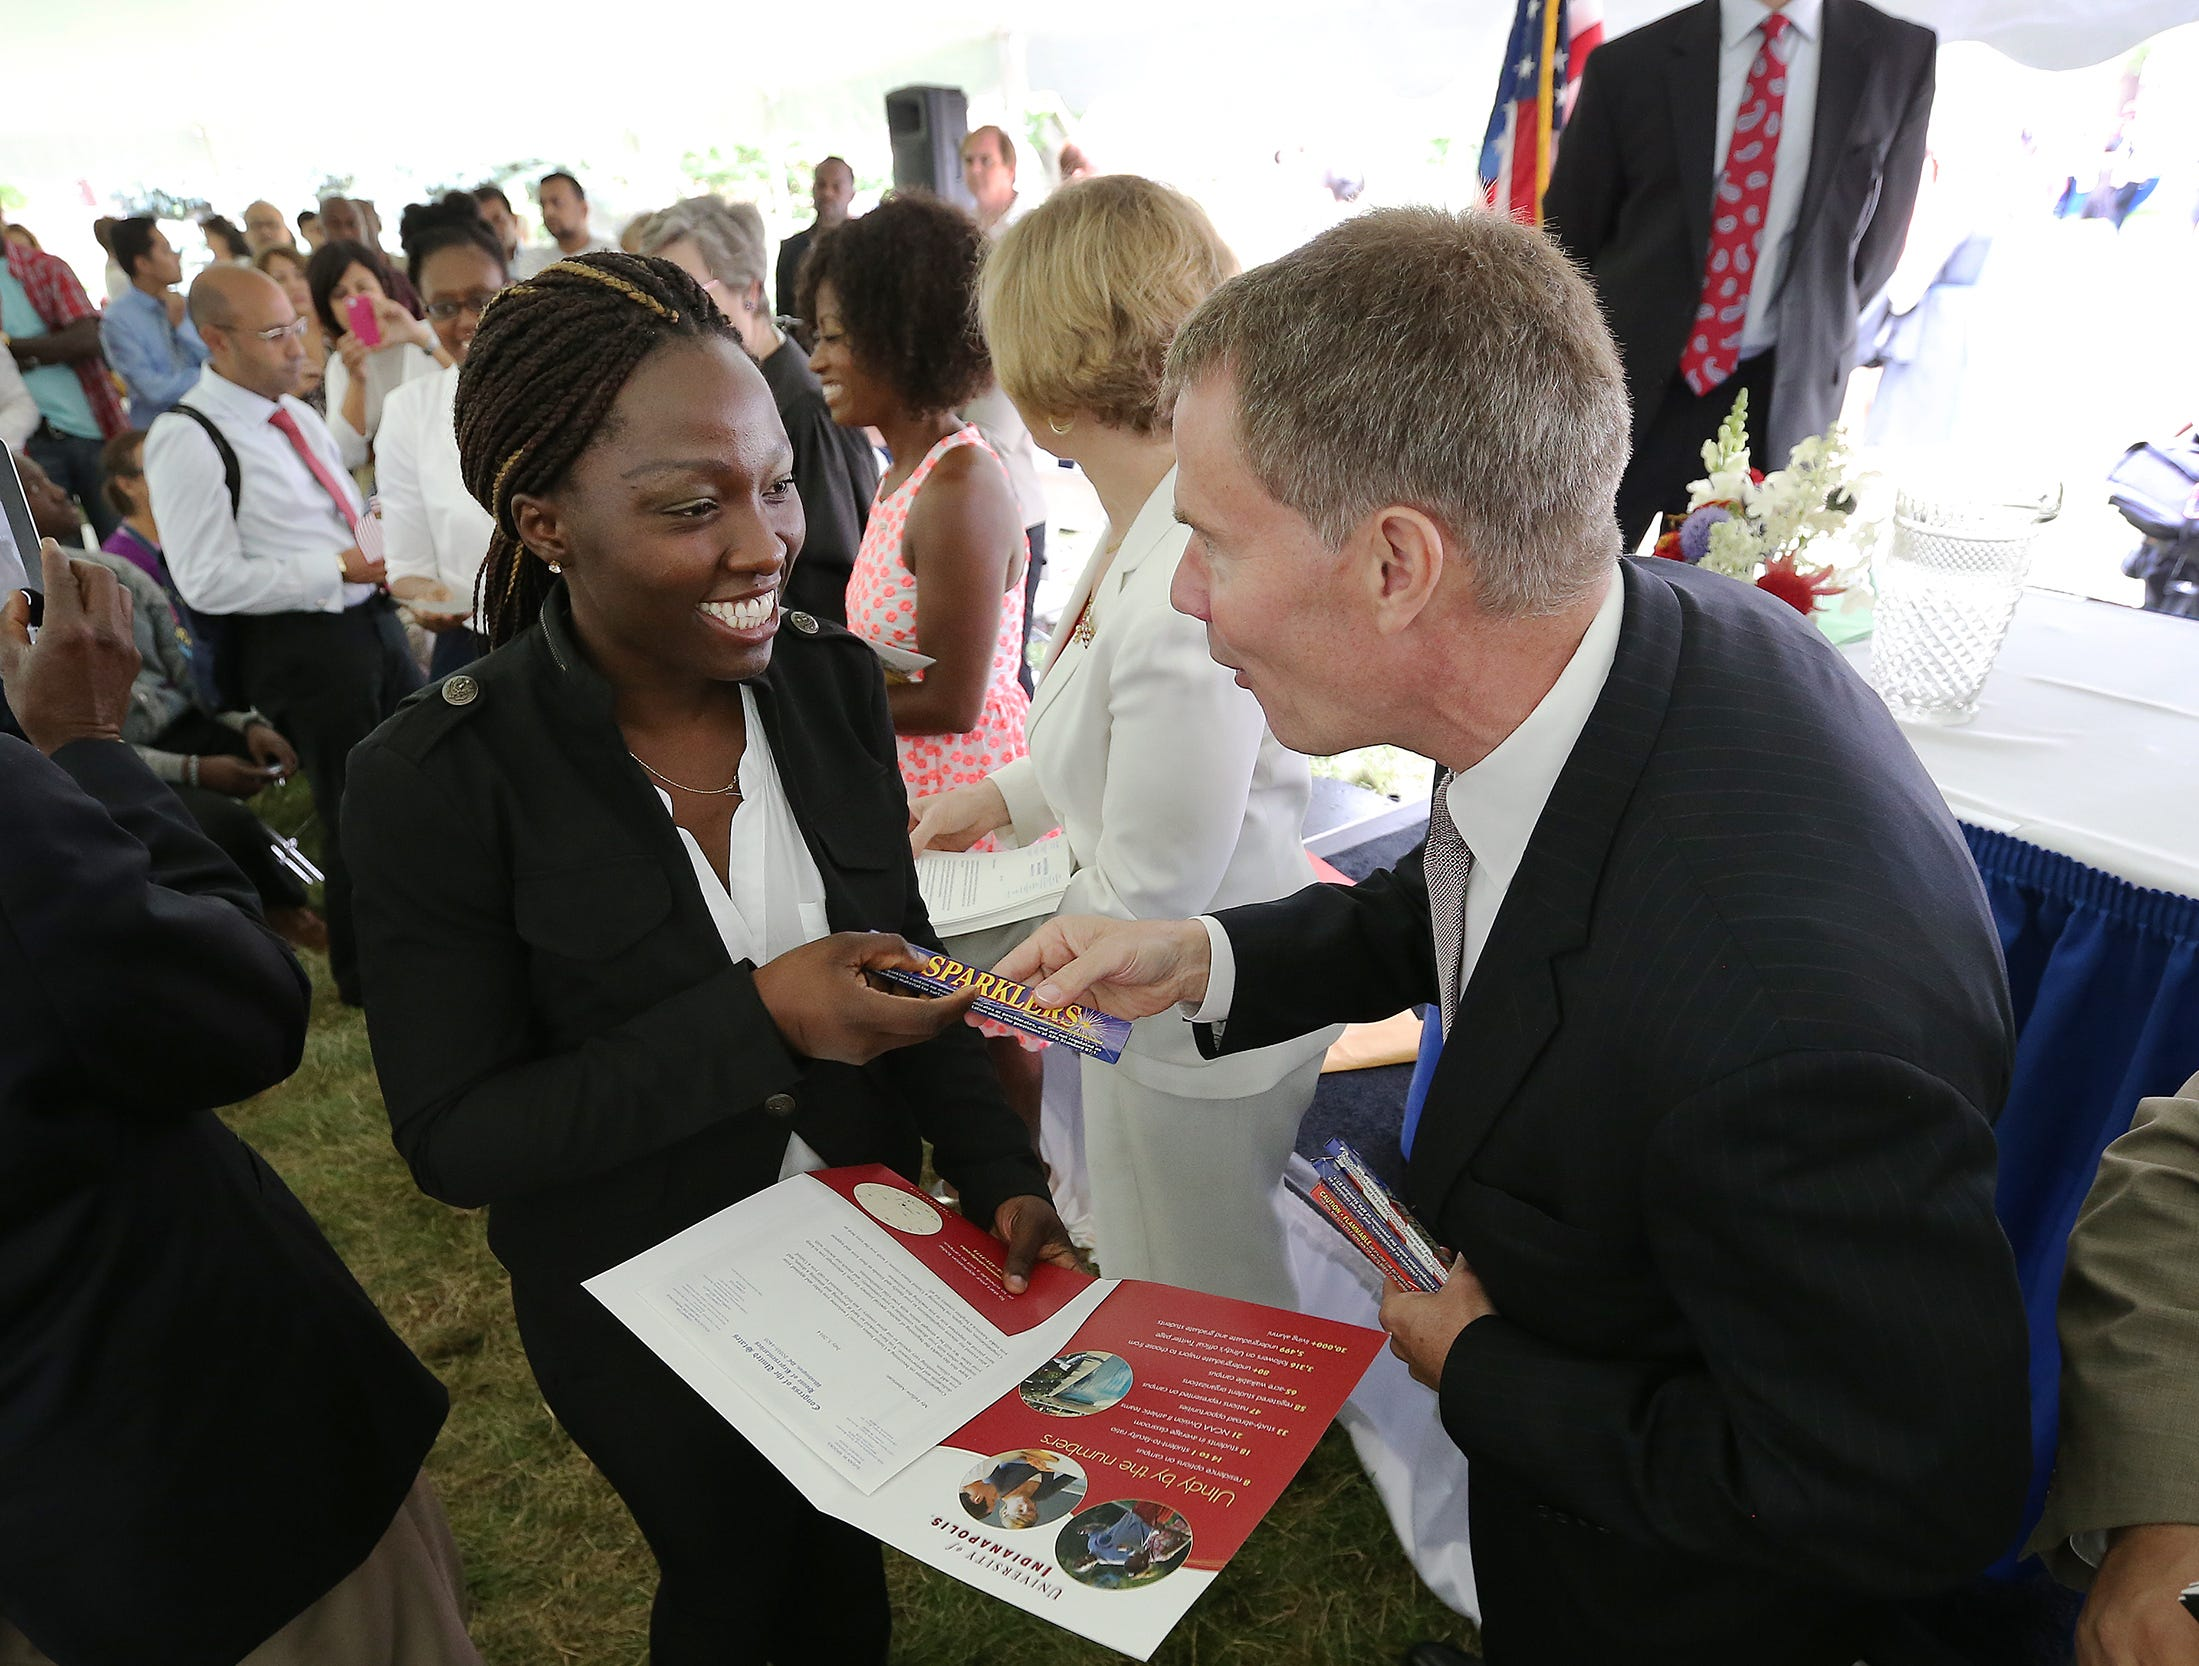 A total of 101 people from numerous countries were sworn in as US citizens during a Naturalization ceremony Thursday, July 3, 2014, morning at the President Benjamin Harrison home. Here Ademofe Adefemiwa is handed a box of sparklers by US Attorney Joseph Hogsett,right, following the ceremony.